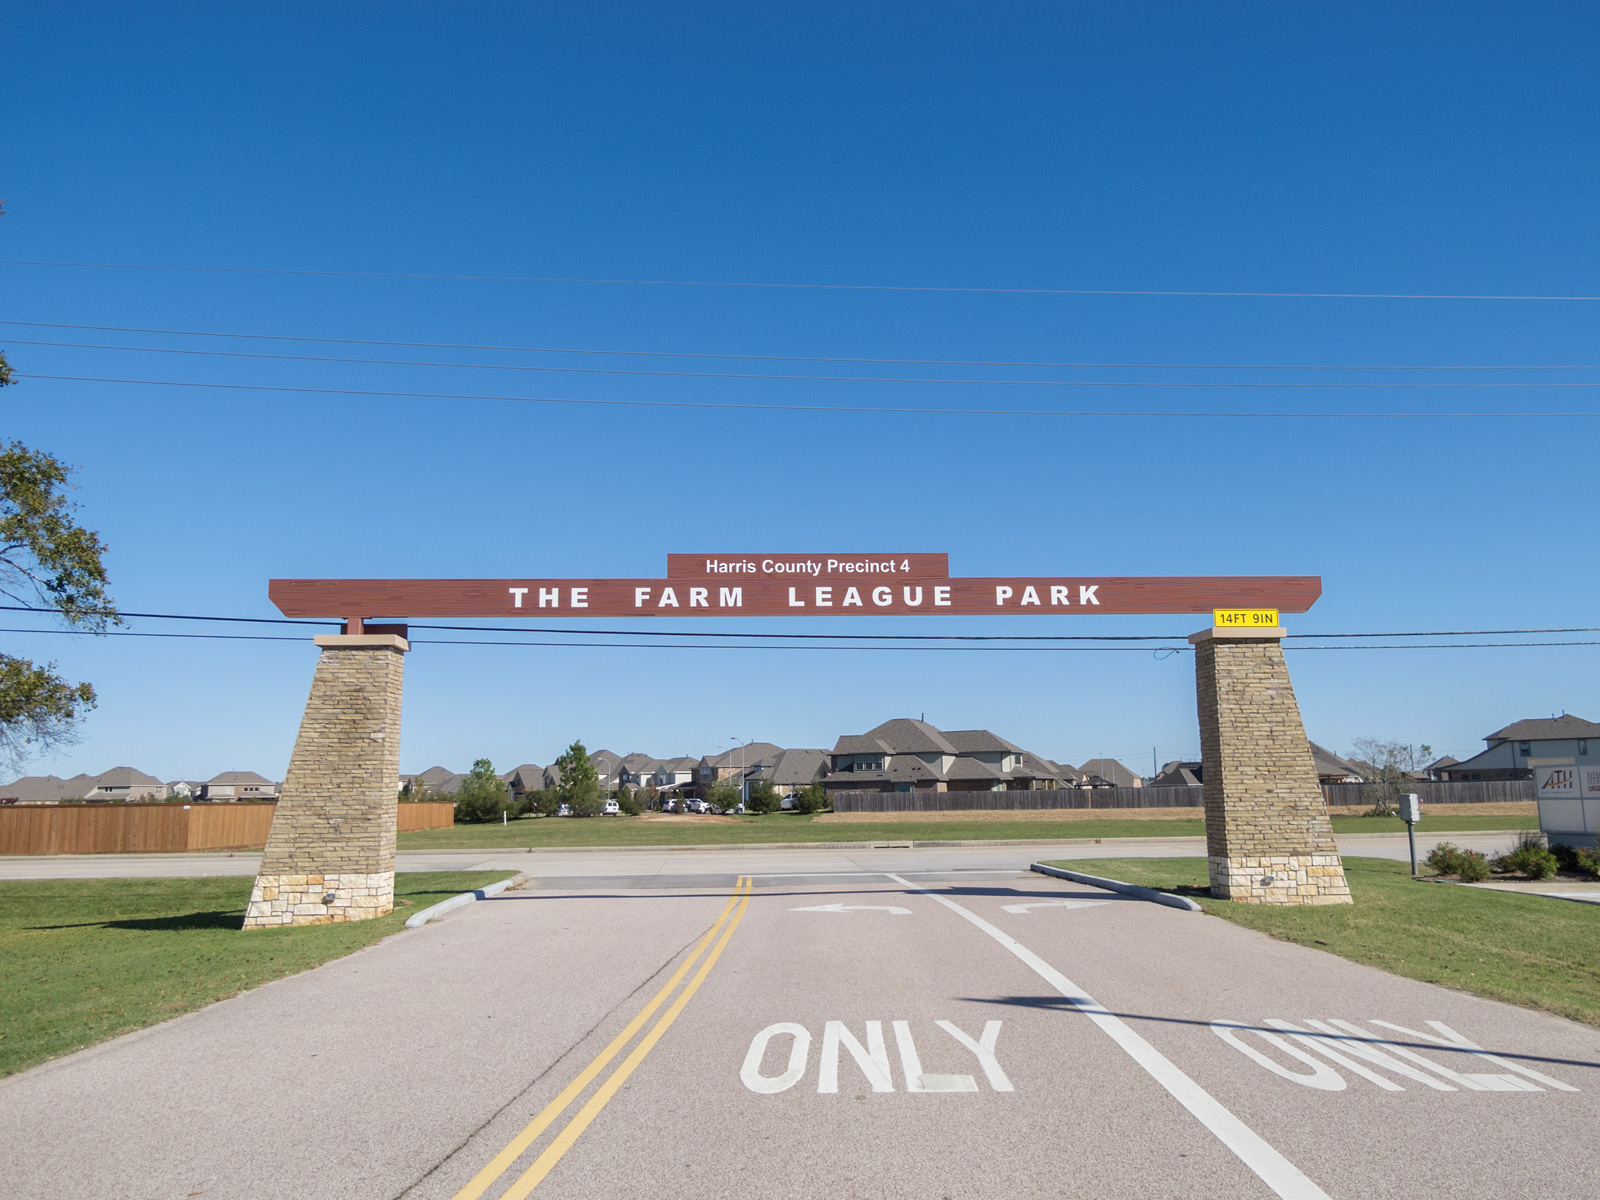 Park gateway with i-beam with engraved wood grain texture and letters and projecting, illuminated cabinets.